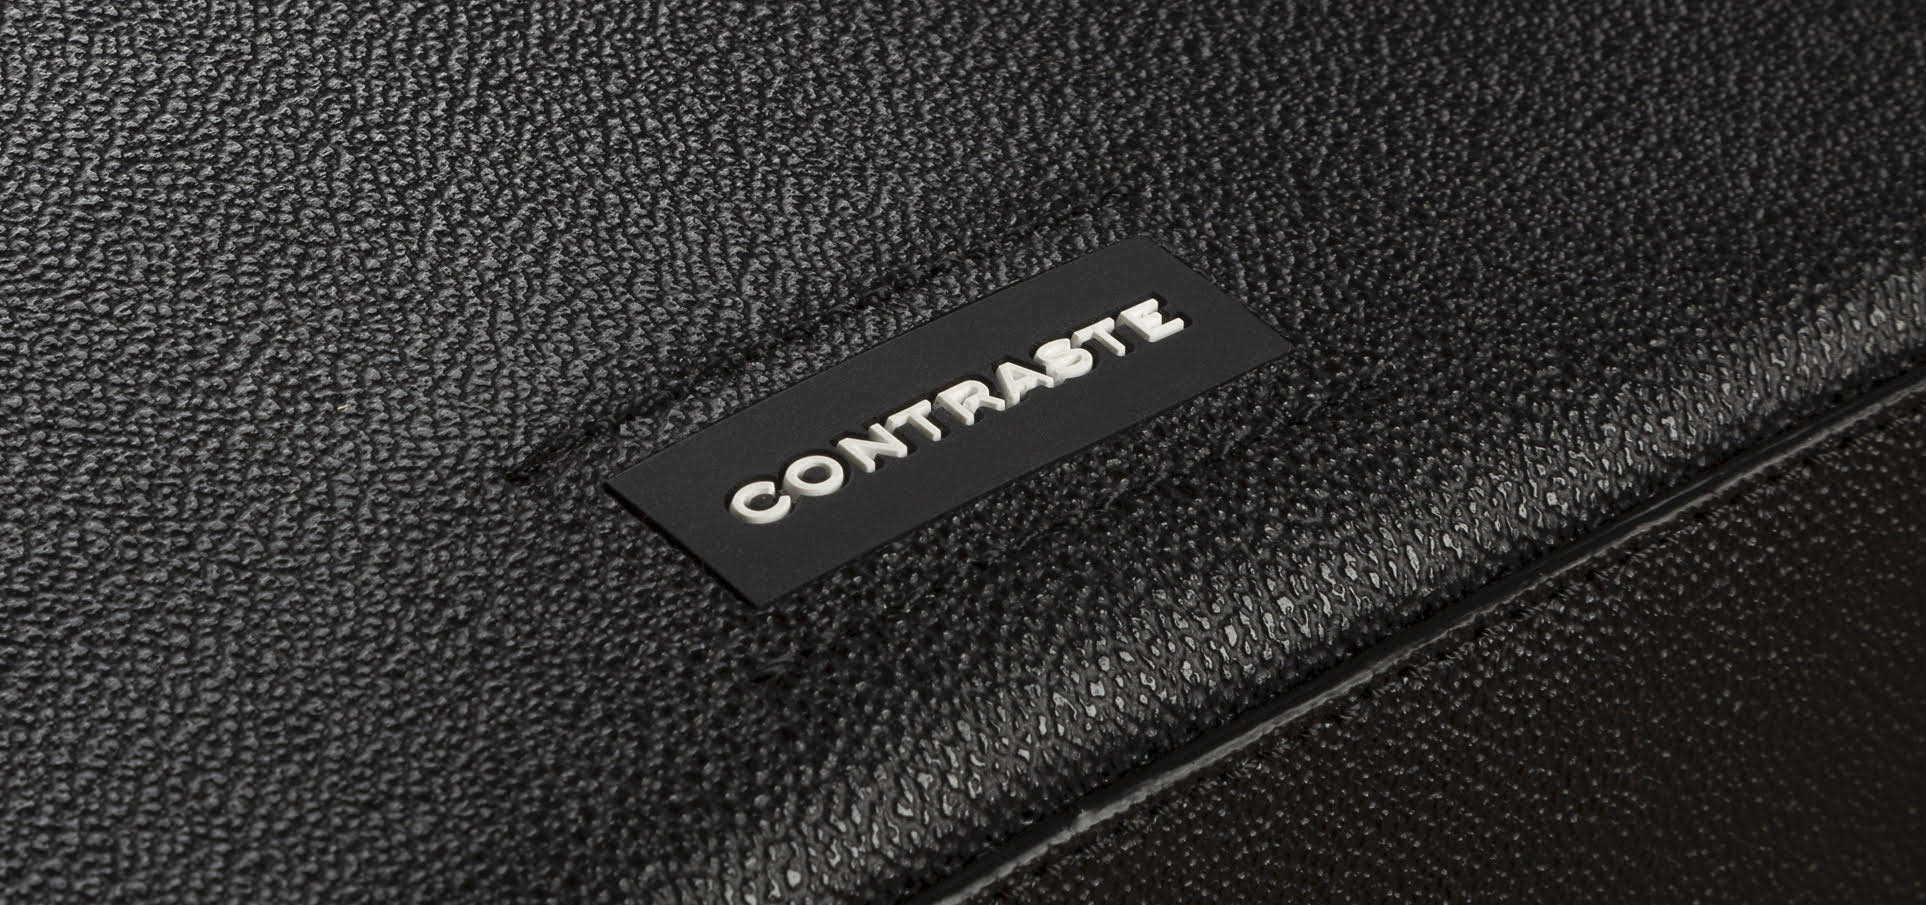 Contraste's Logo showing on the bag